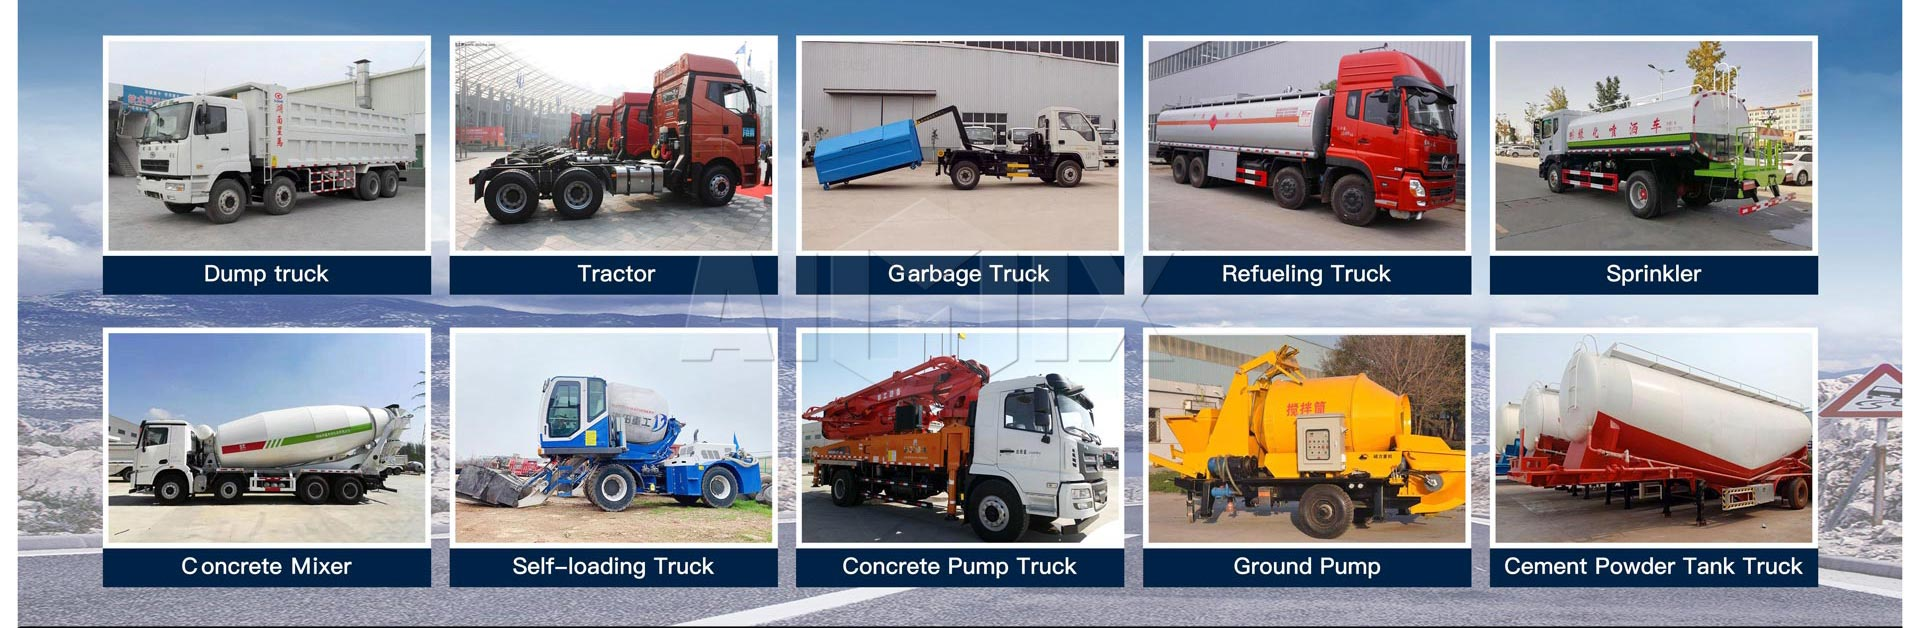 aimix-used-equipment-supplier